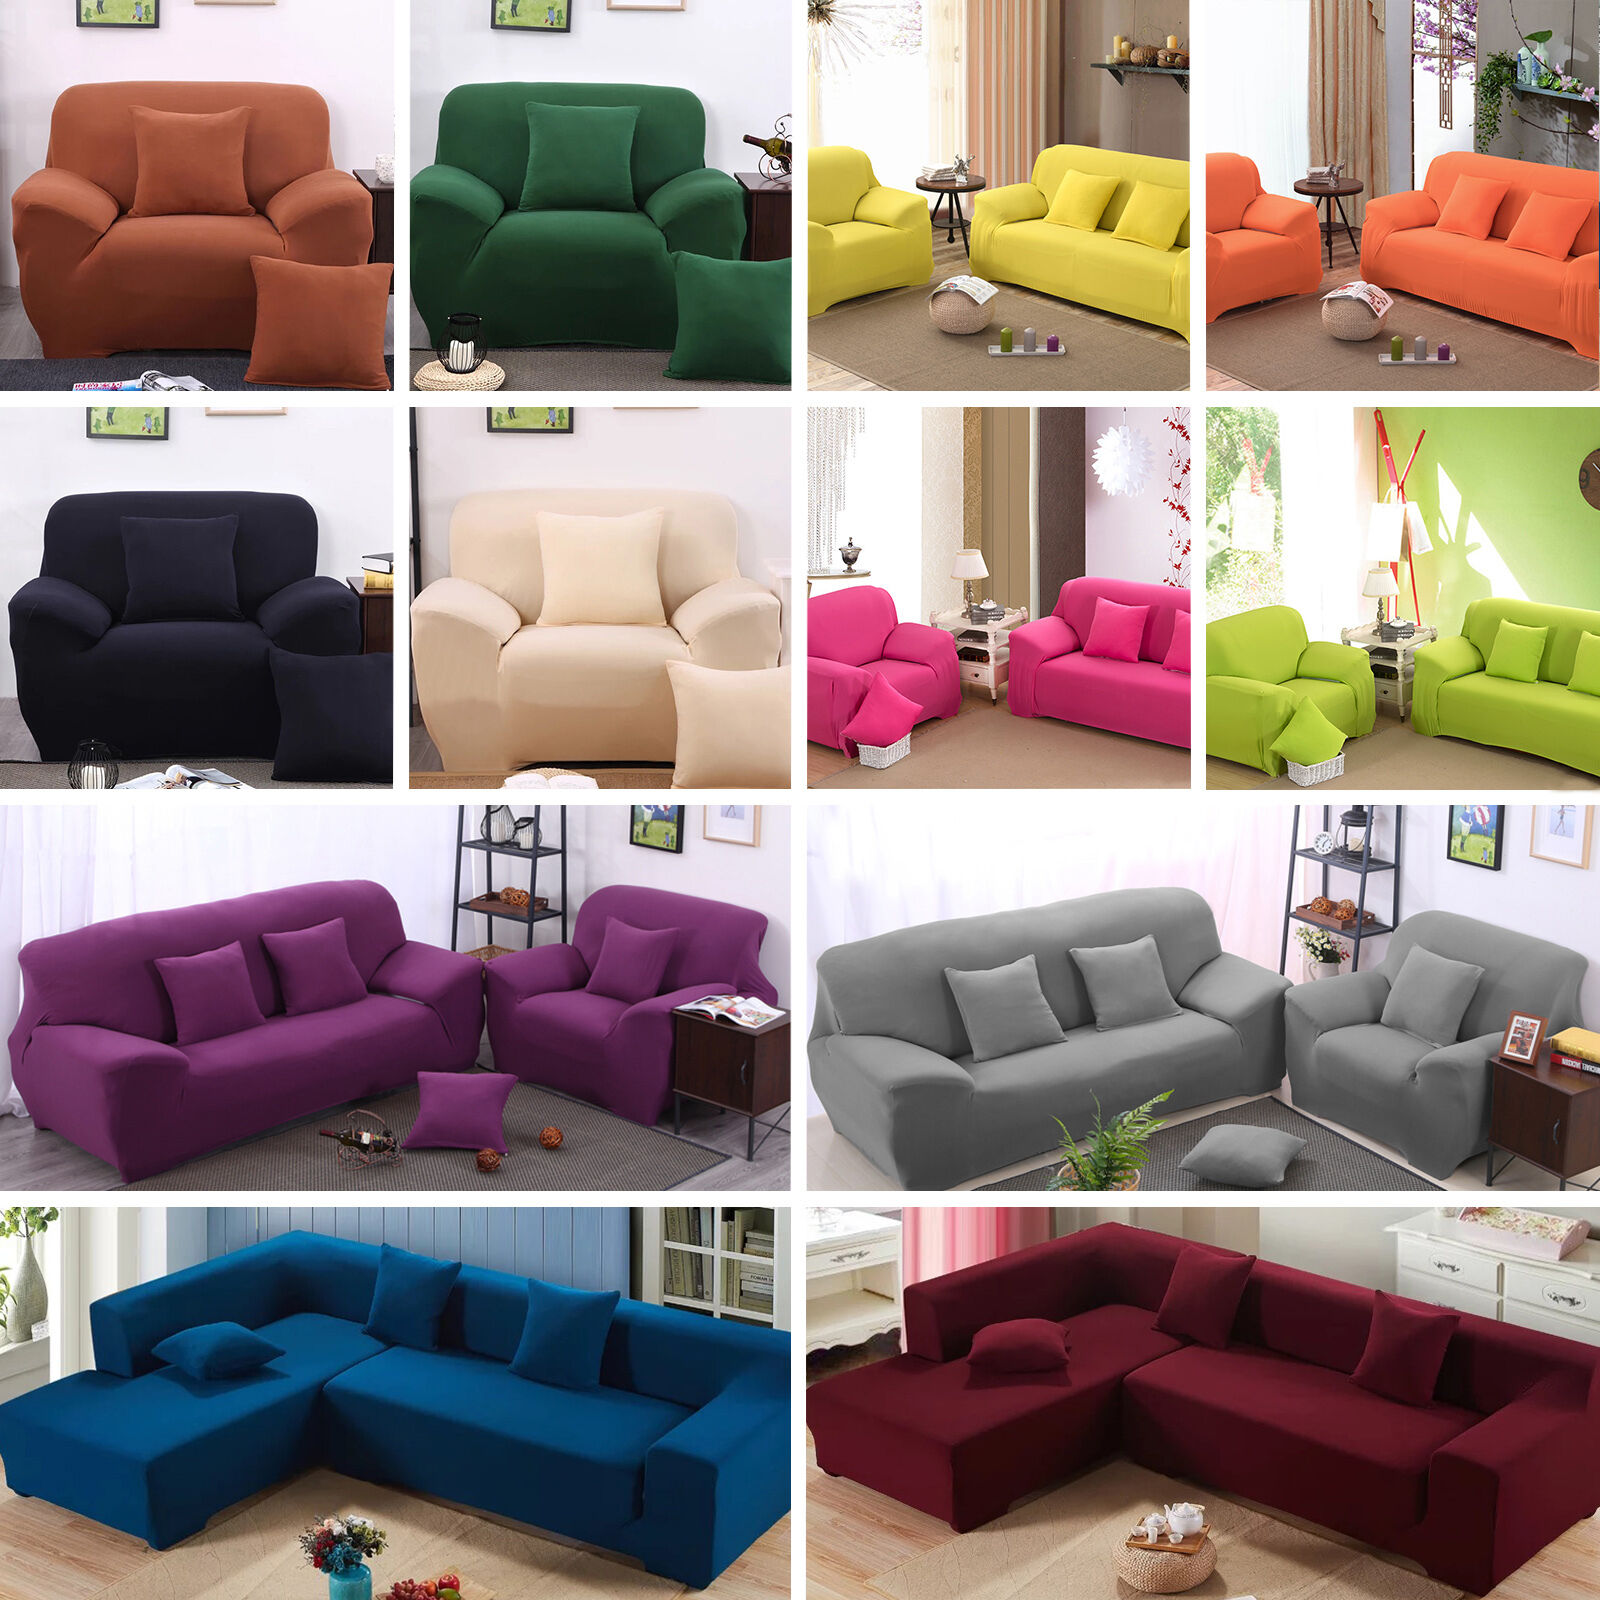 Details About 2018 Hot L Shape Stretch Elastic Fabric Sofa Cover Sectional Corner Couch Covers